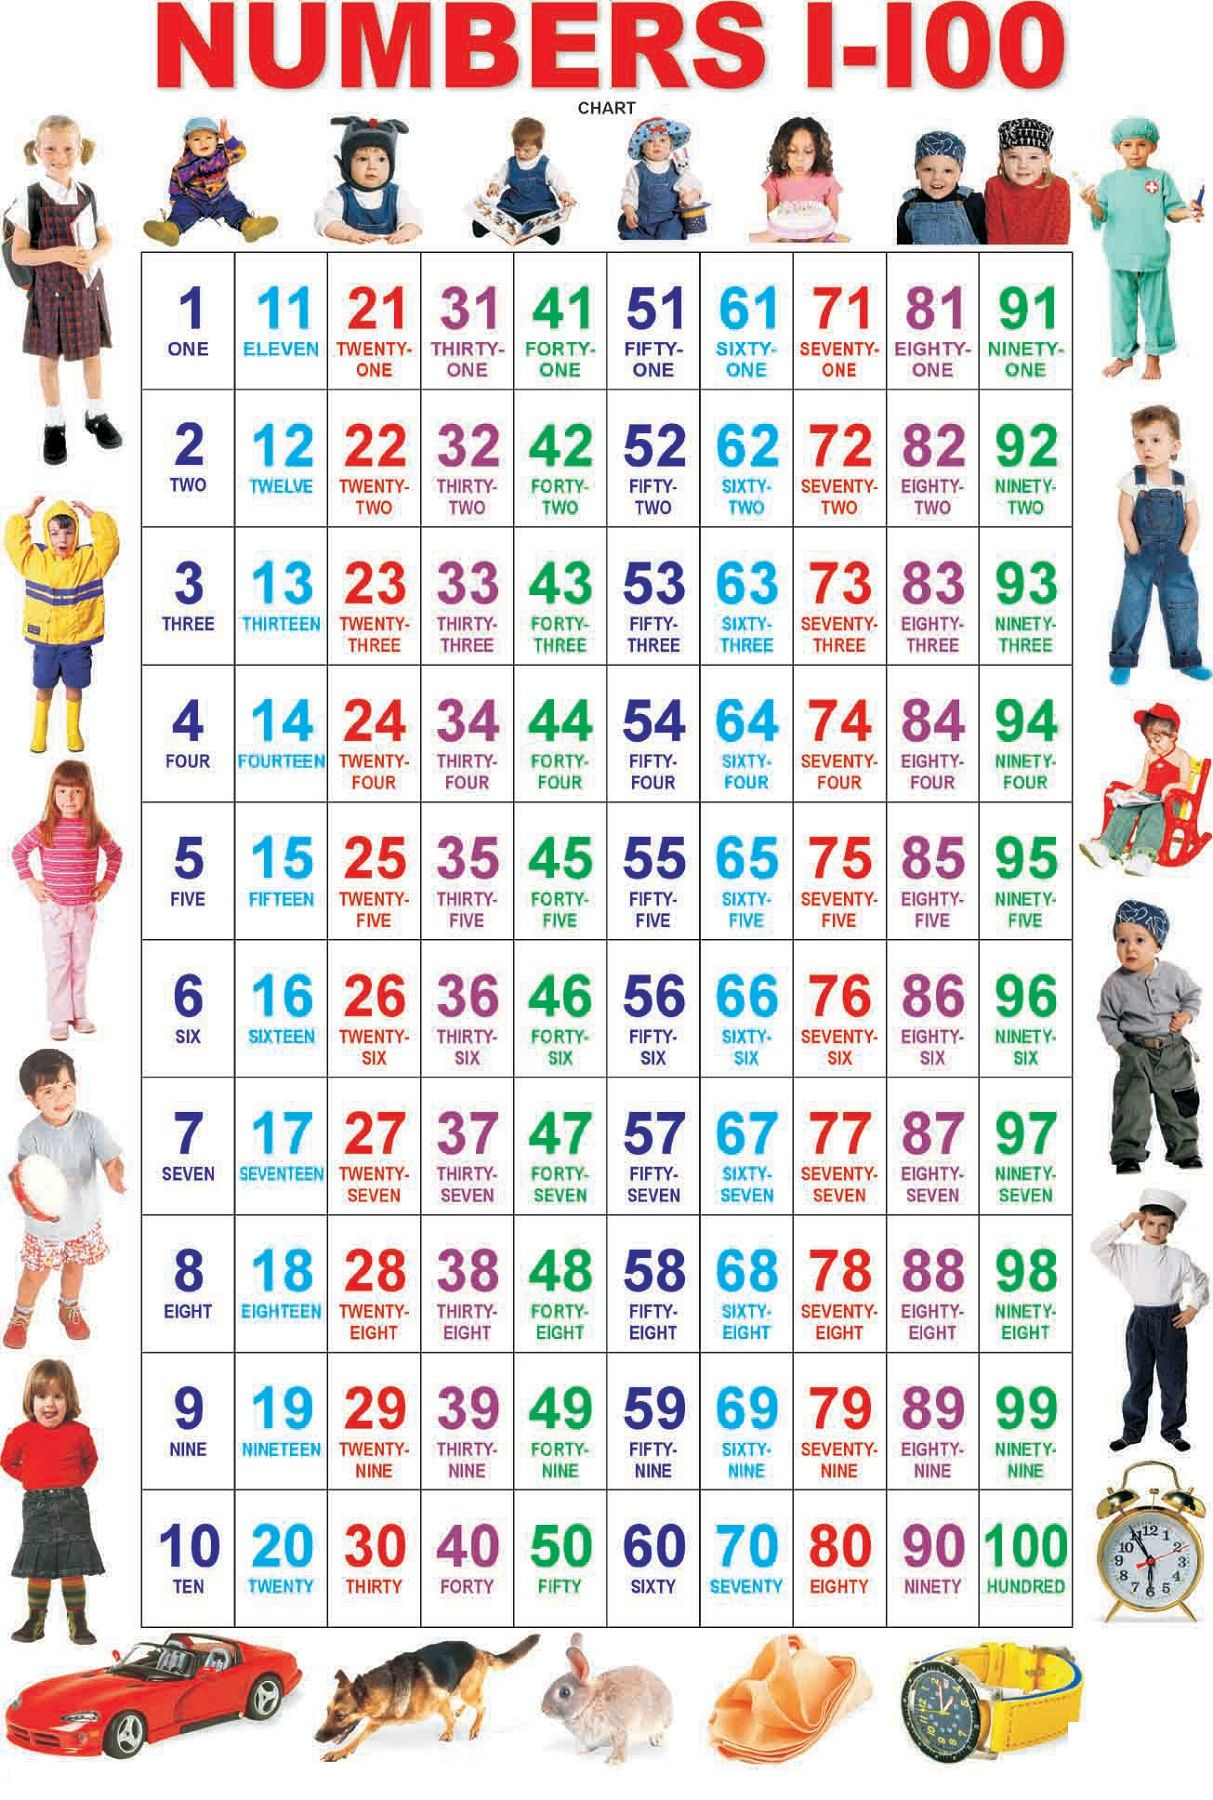 worksheet 100 Chart Printable number sheet 1 100 to print activity shelter kids worksheets printable for children who are learning memorize hundred charts